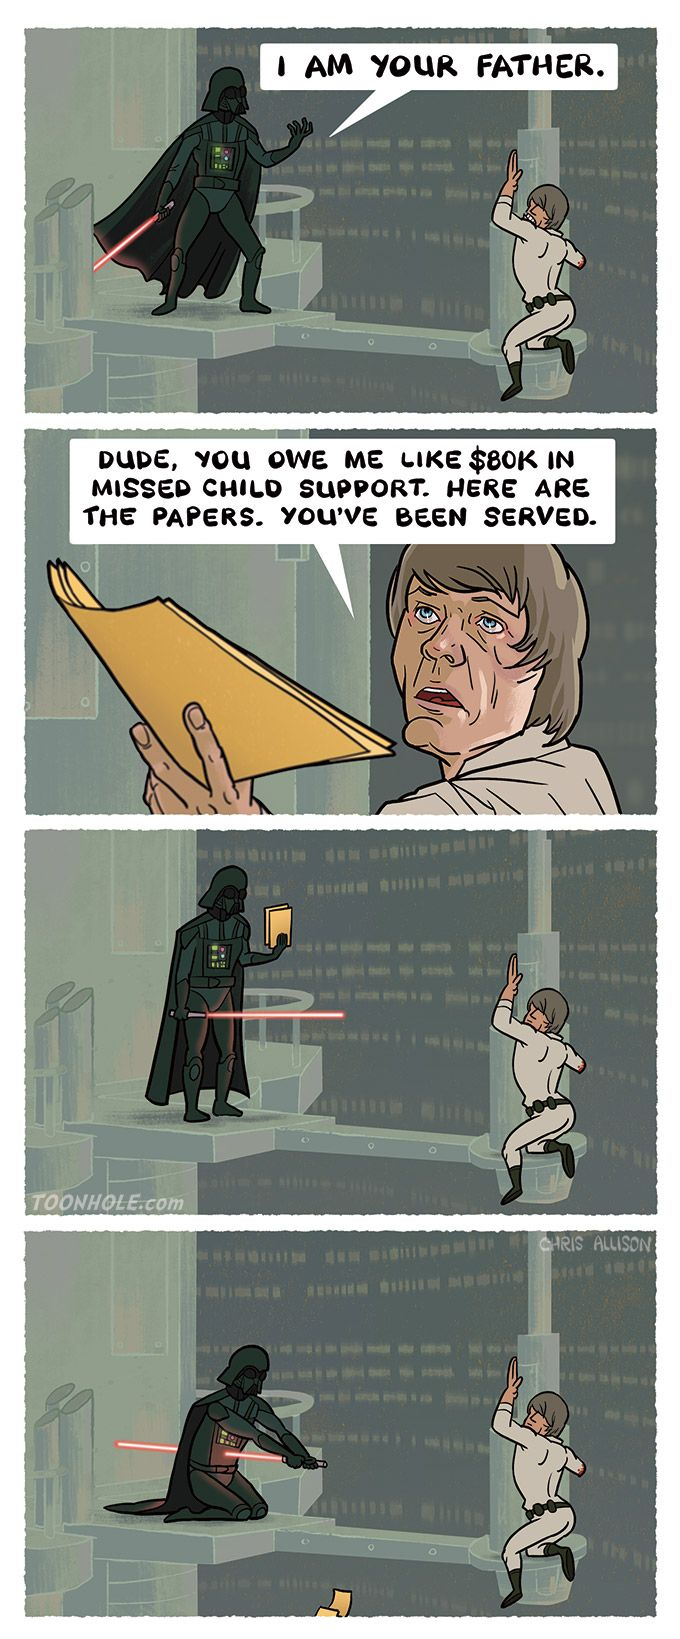 I am your father...